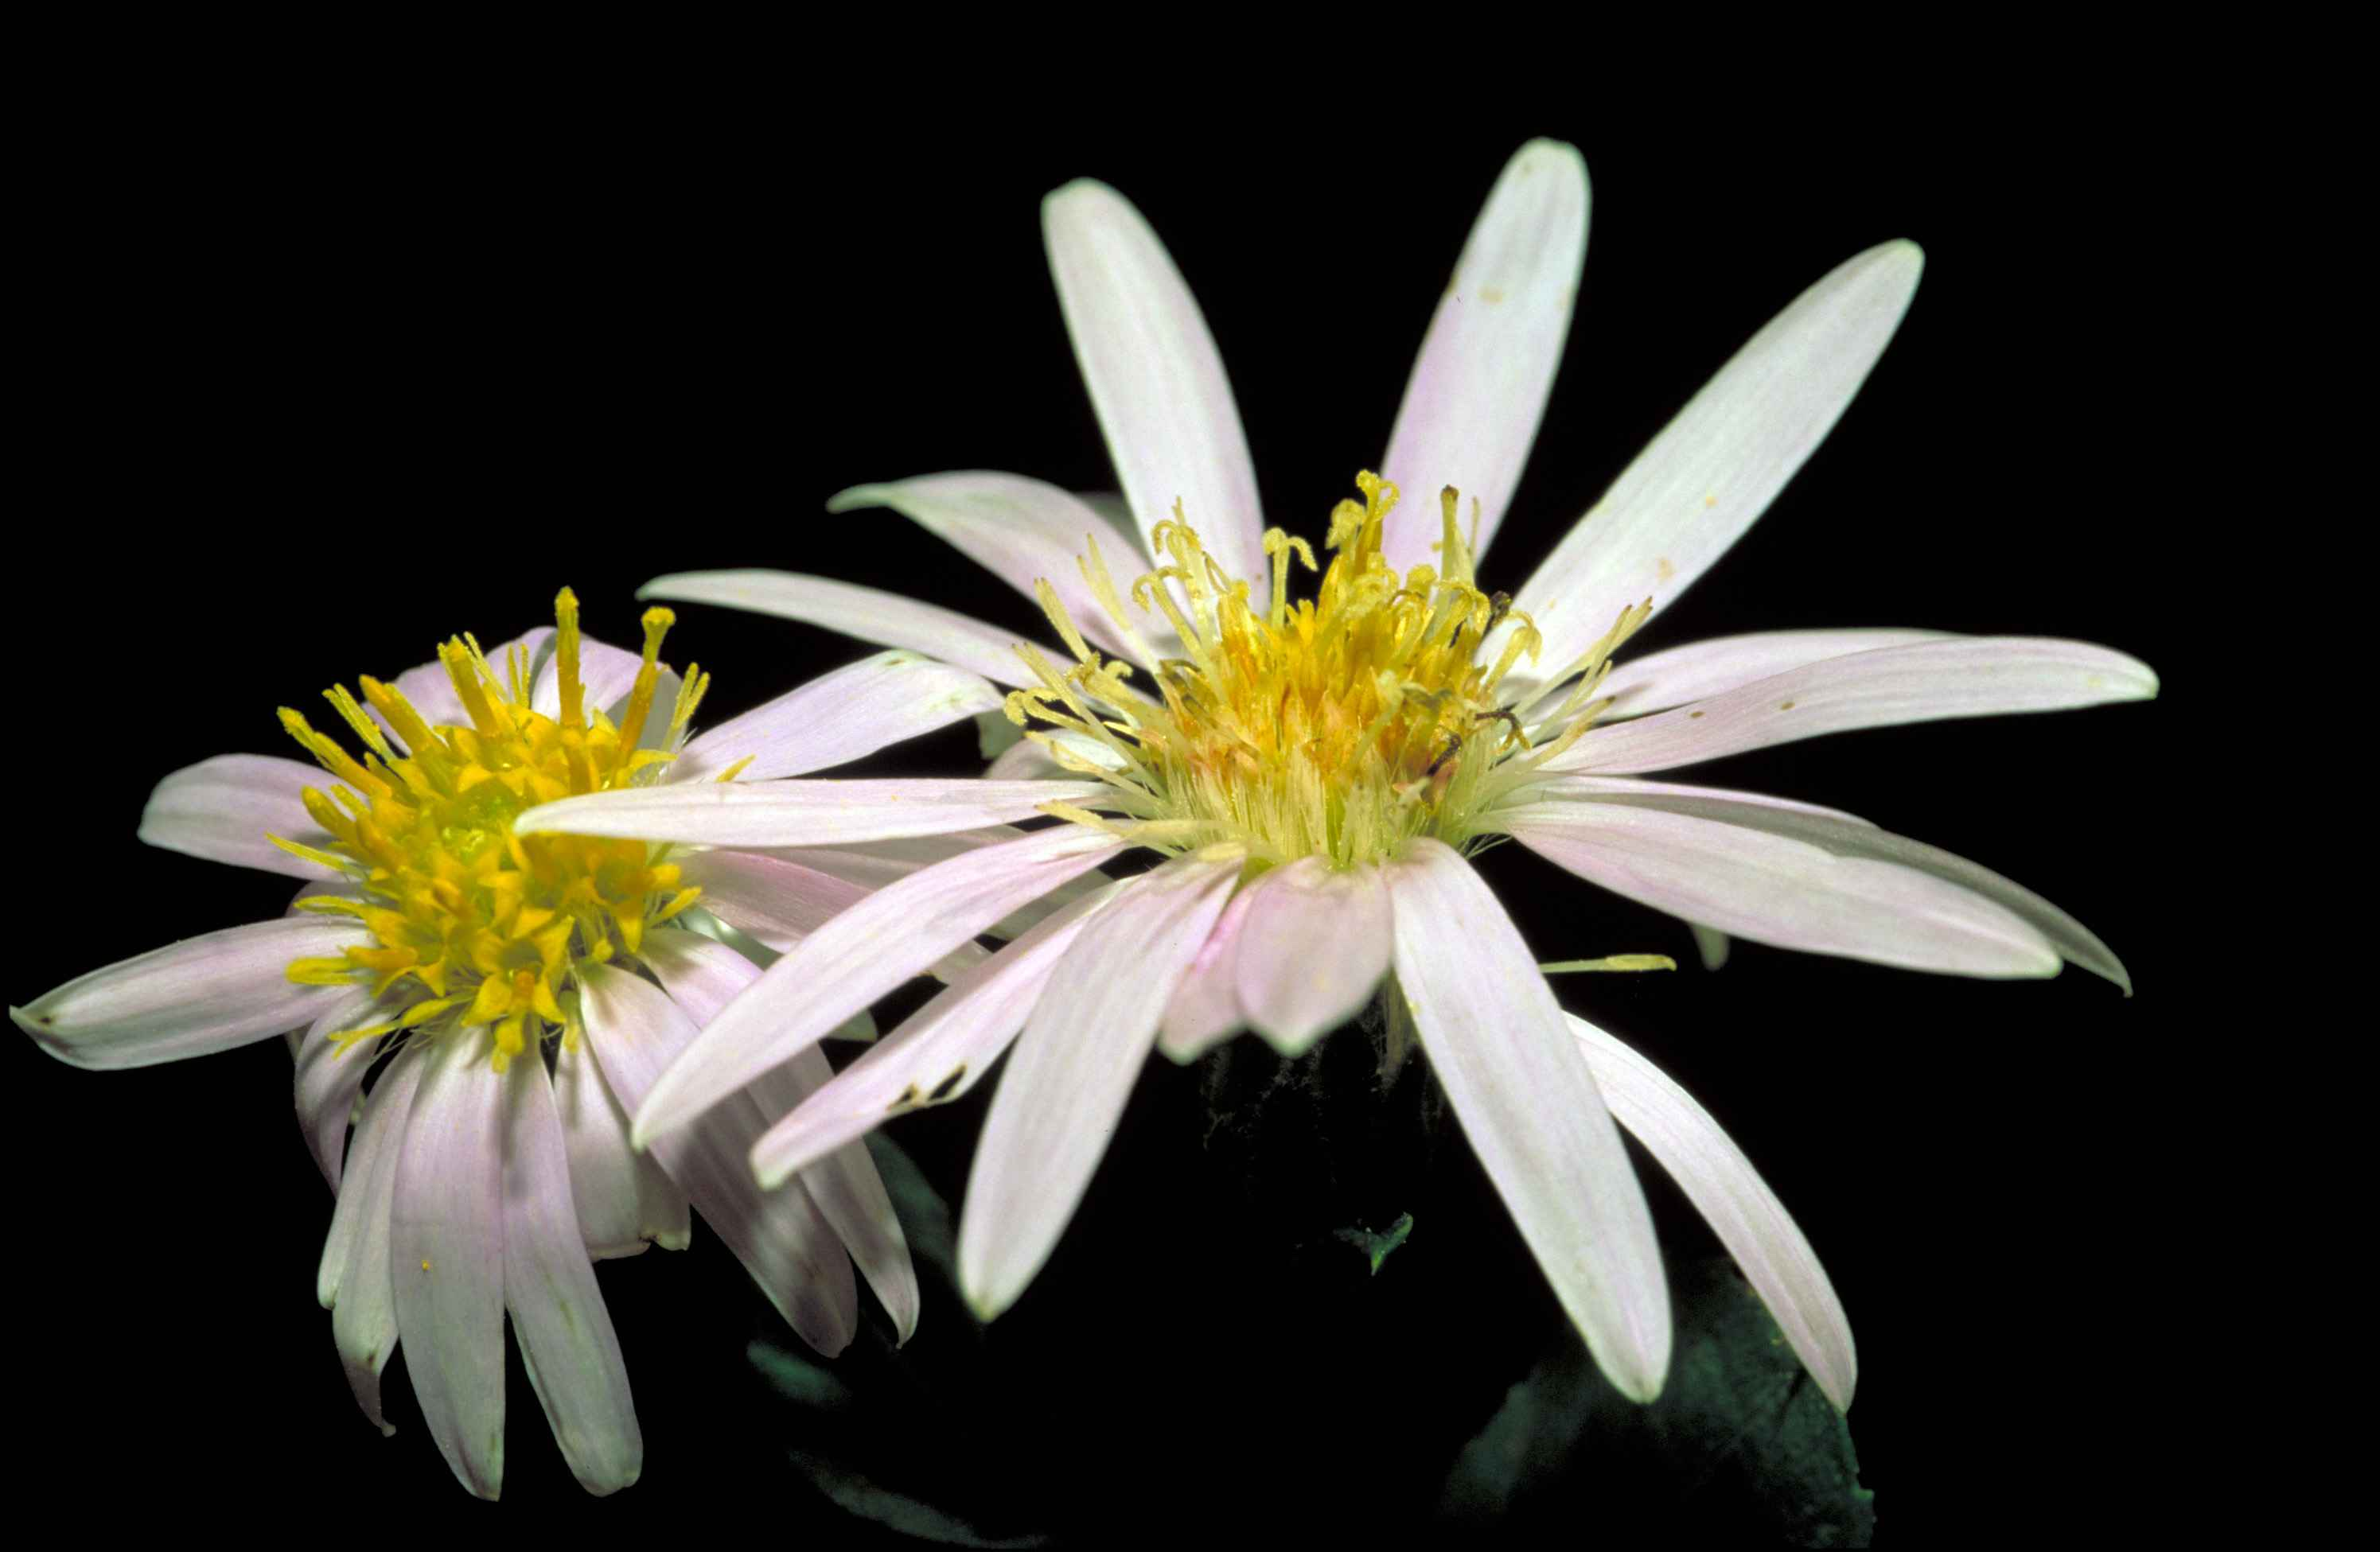 Filewhite Rockcastle Aster Flower Eurybia Saxicastellii With A